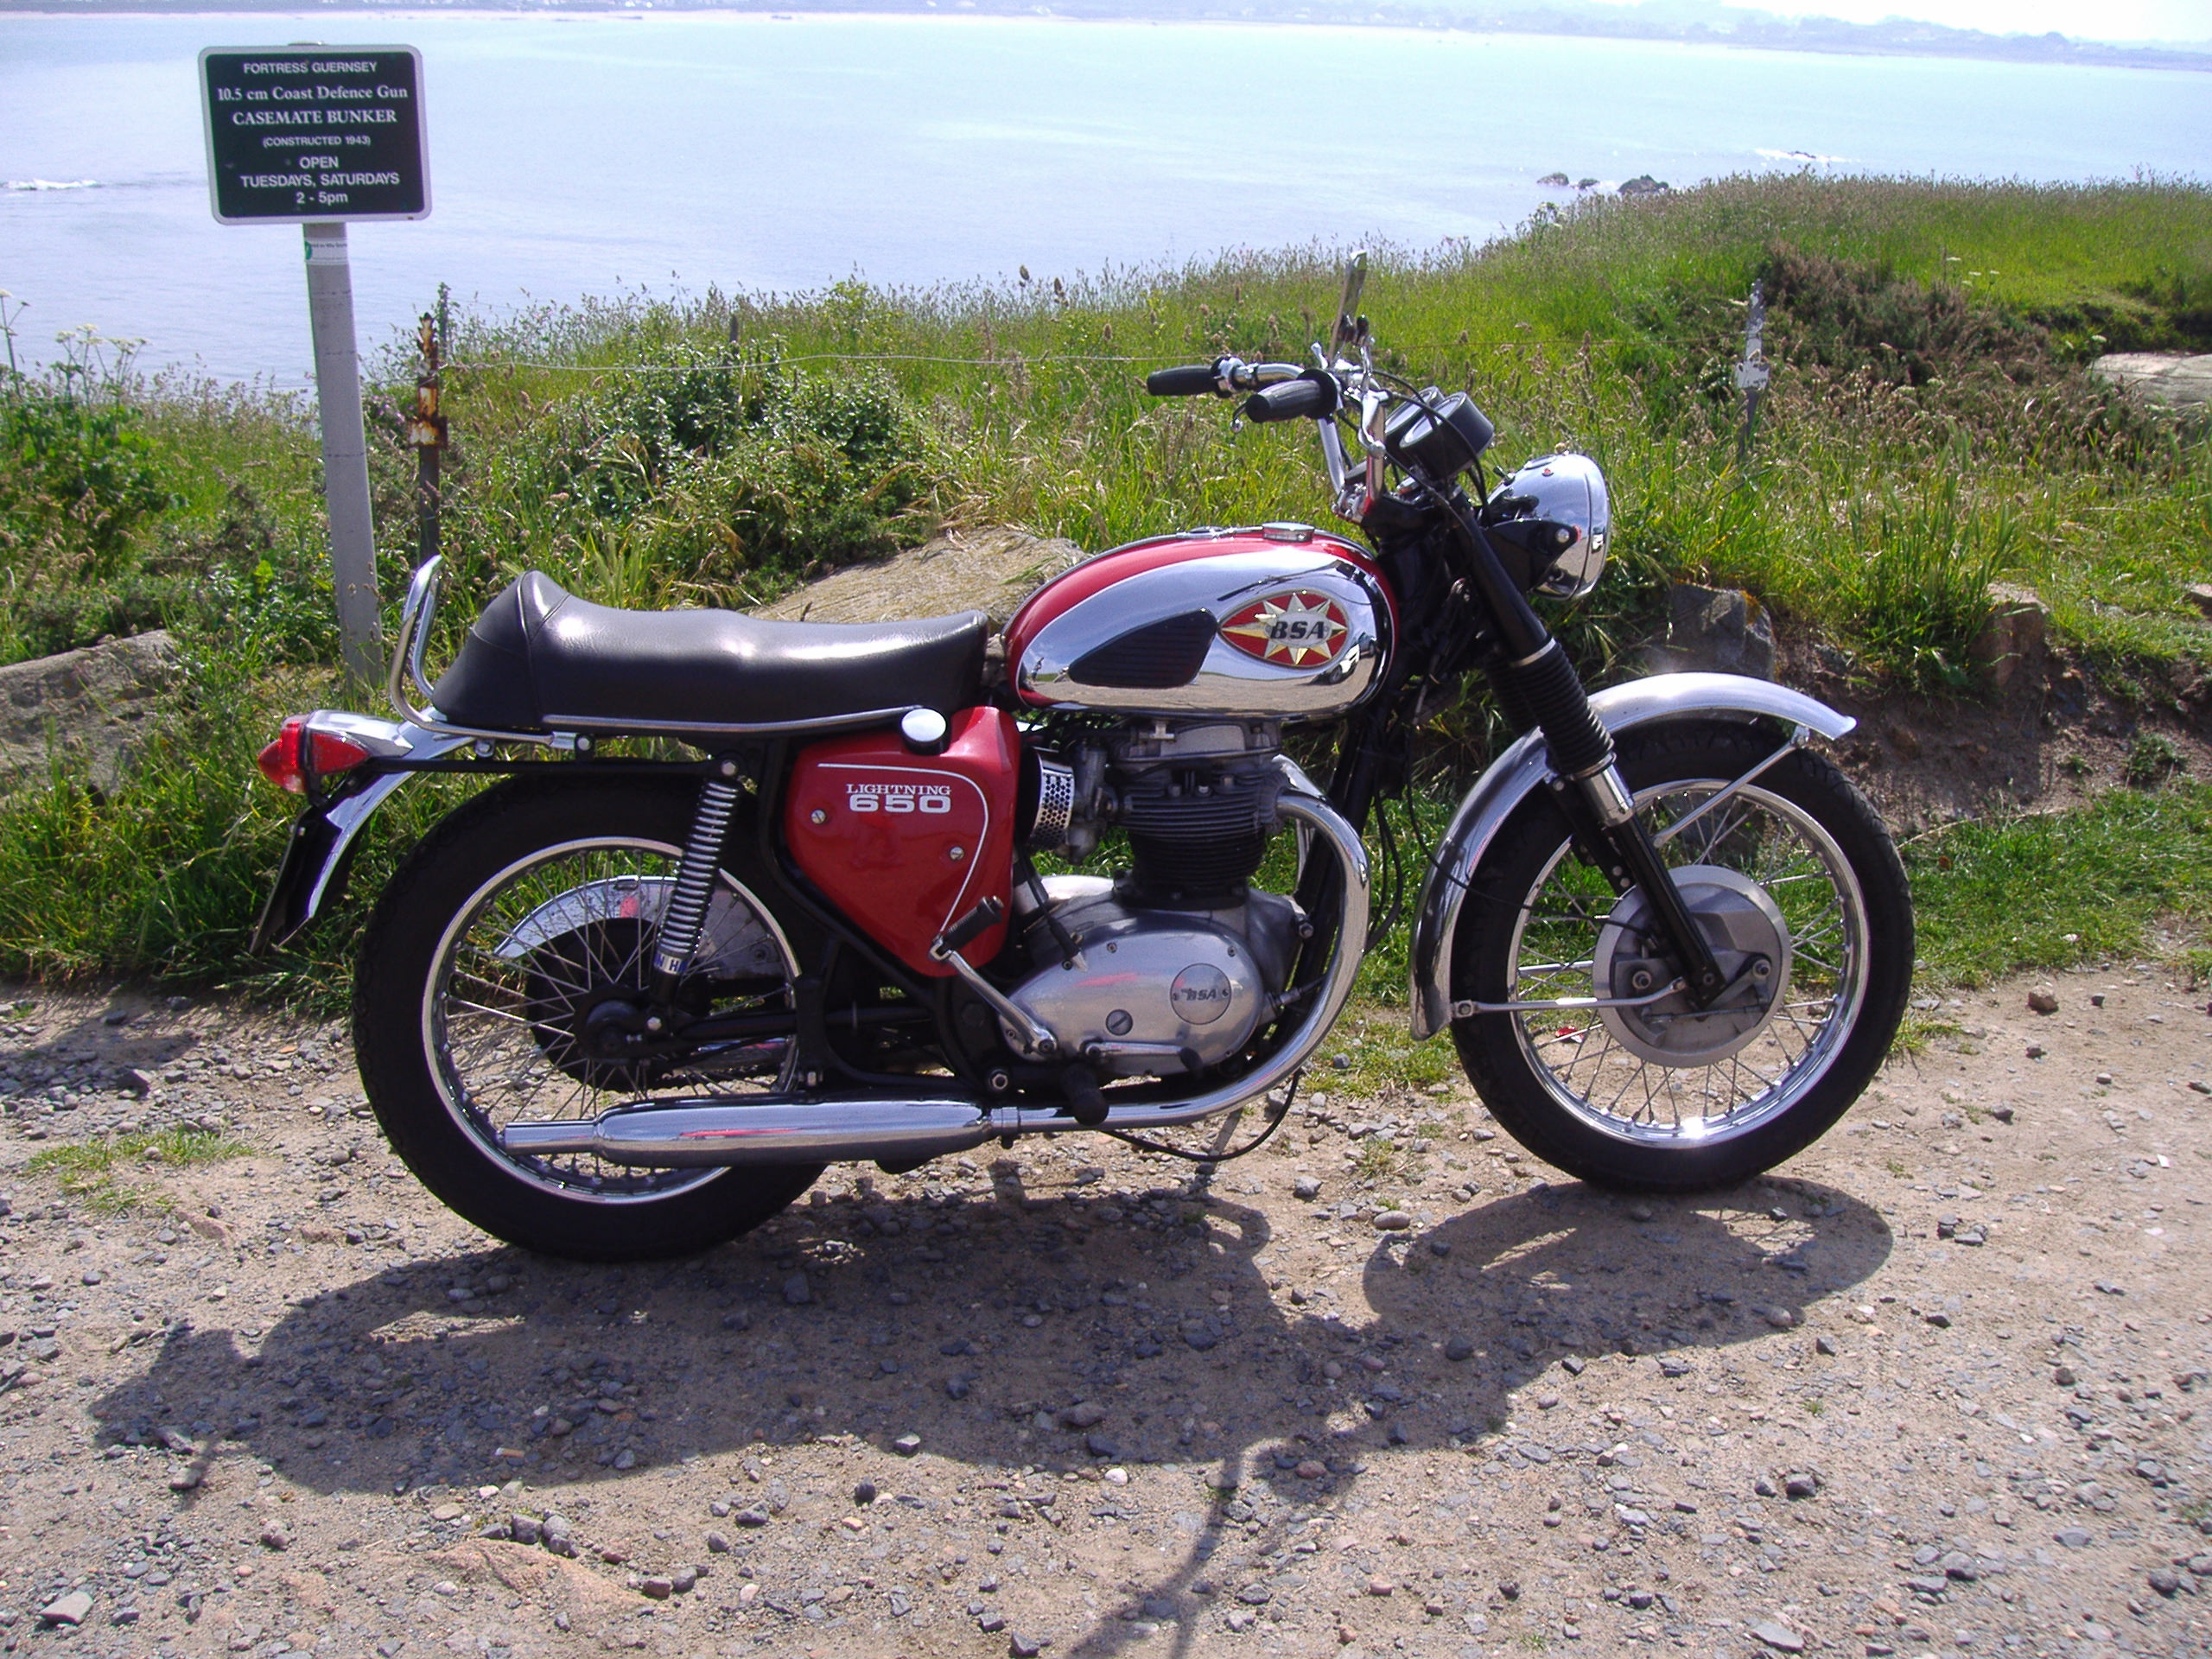 Kawasaki Copy Of Bsa A